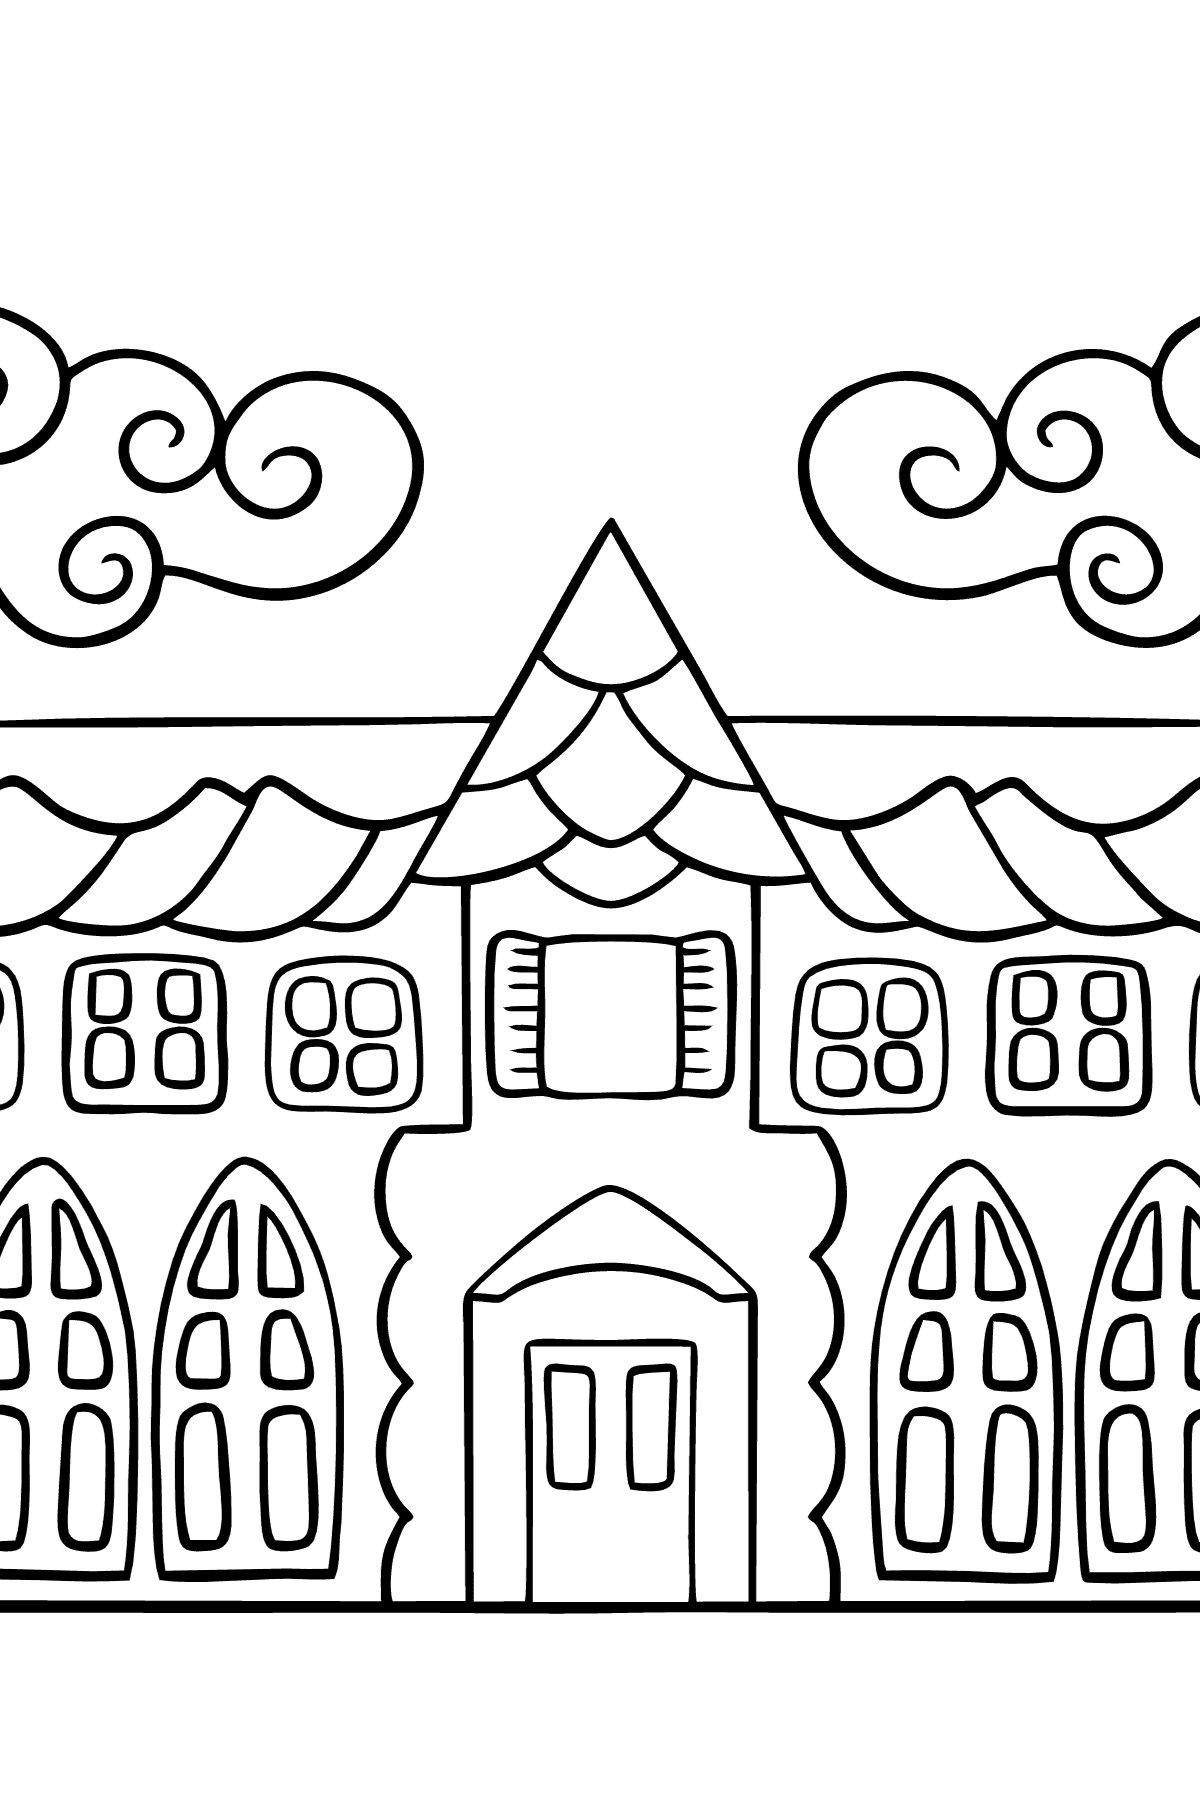 Coloring Page - A House in an Enchanted Kingdom for Children